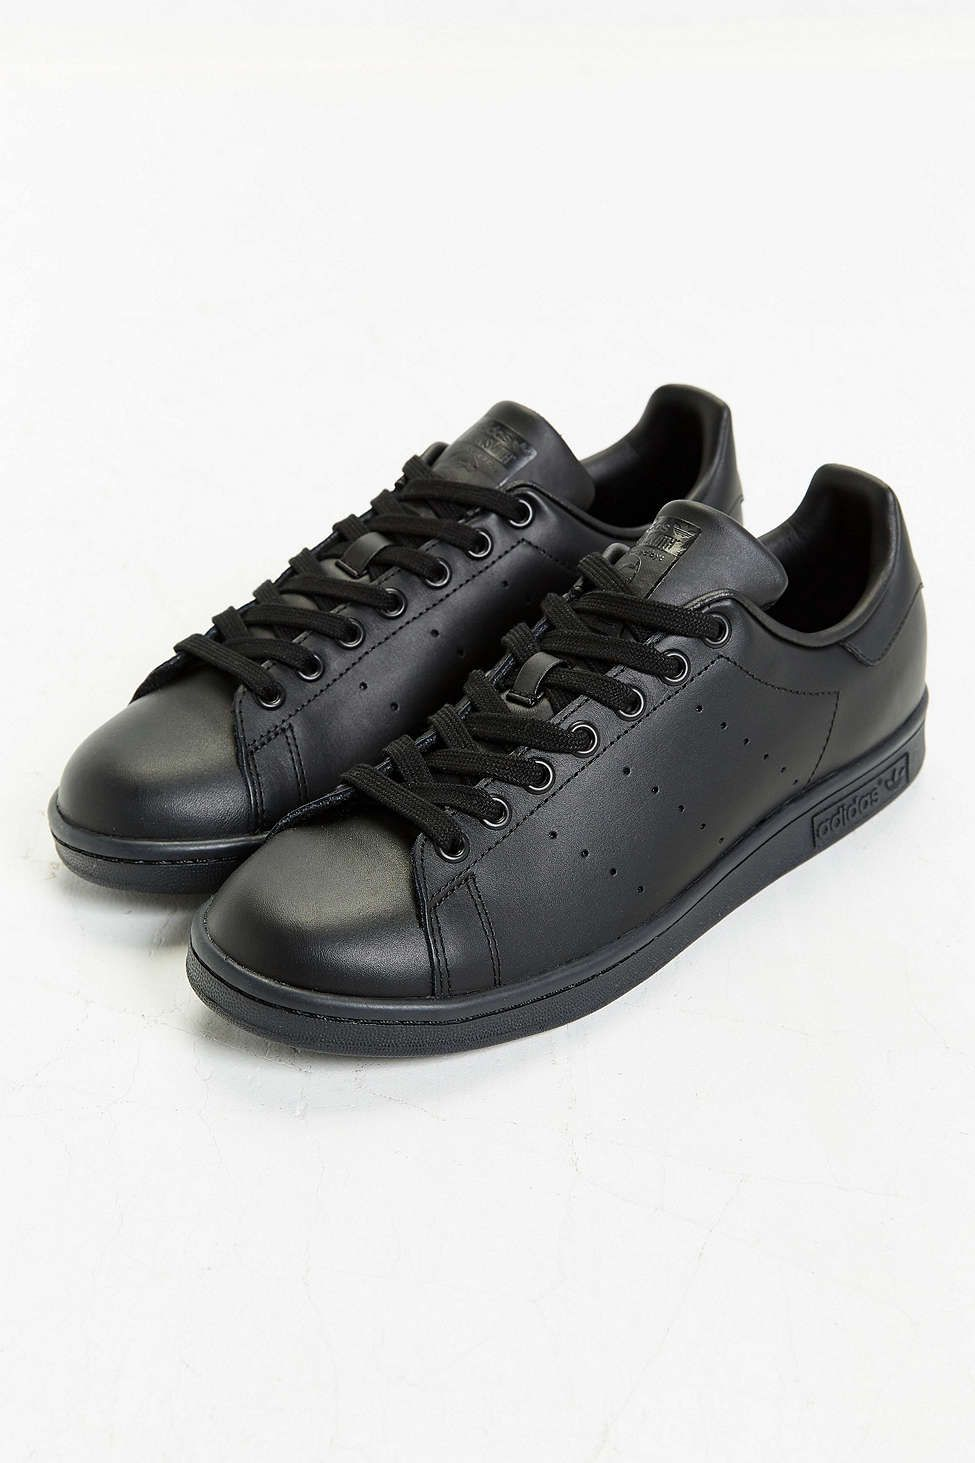 newest c2d83 99365 adidas Originals Classic Stan Smith - Tags  sneakers, low-tops, all black,  leather